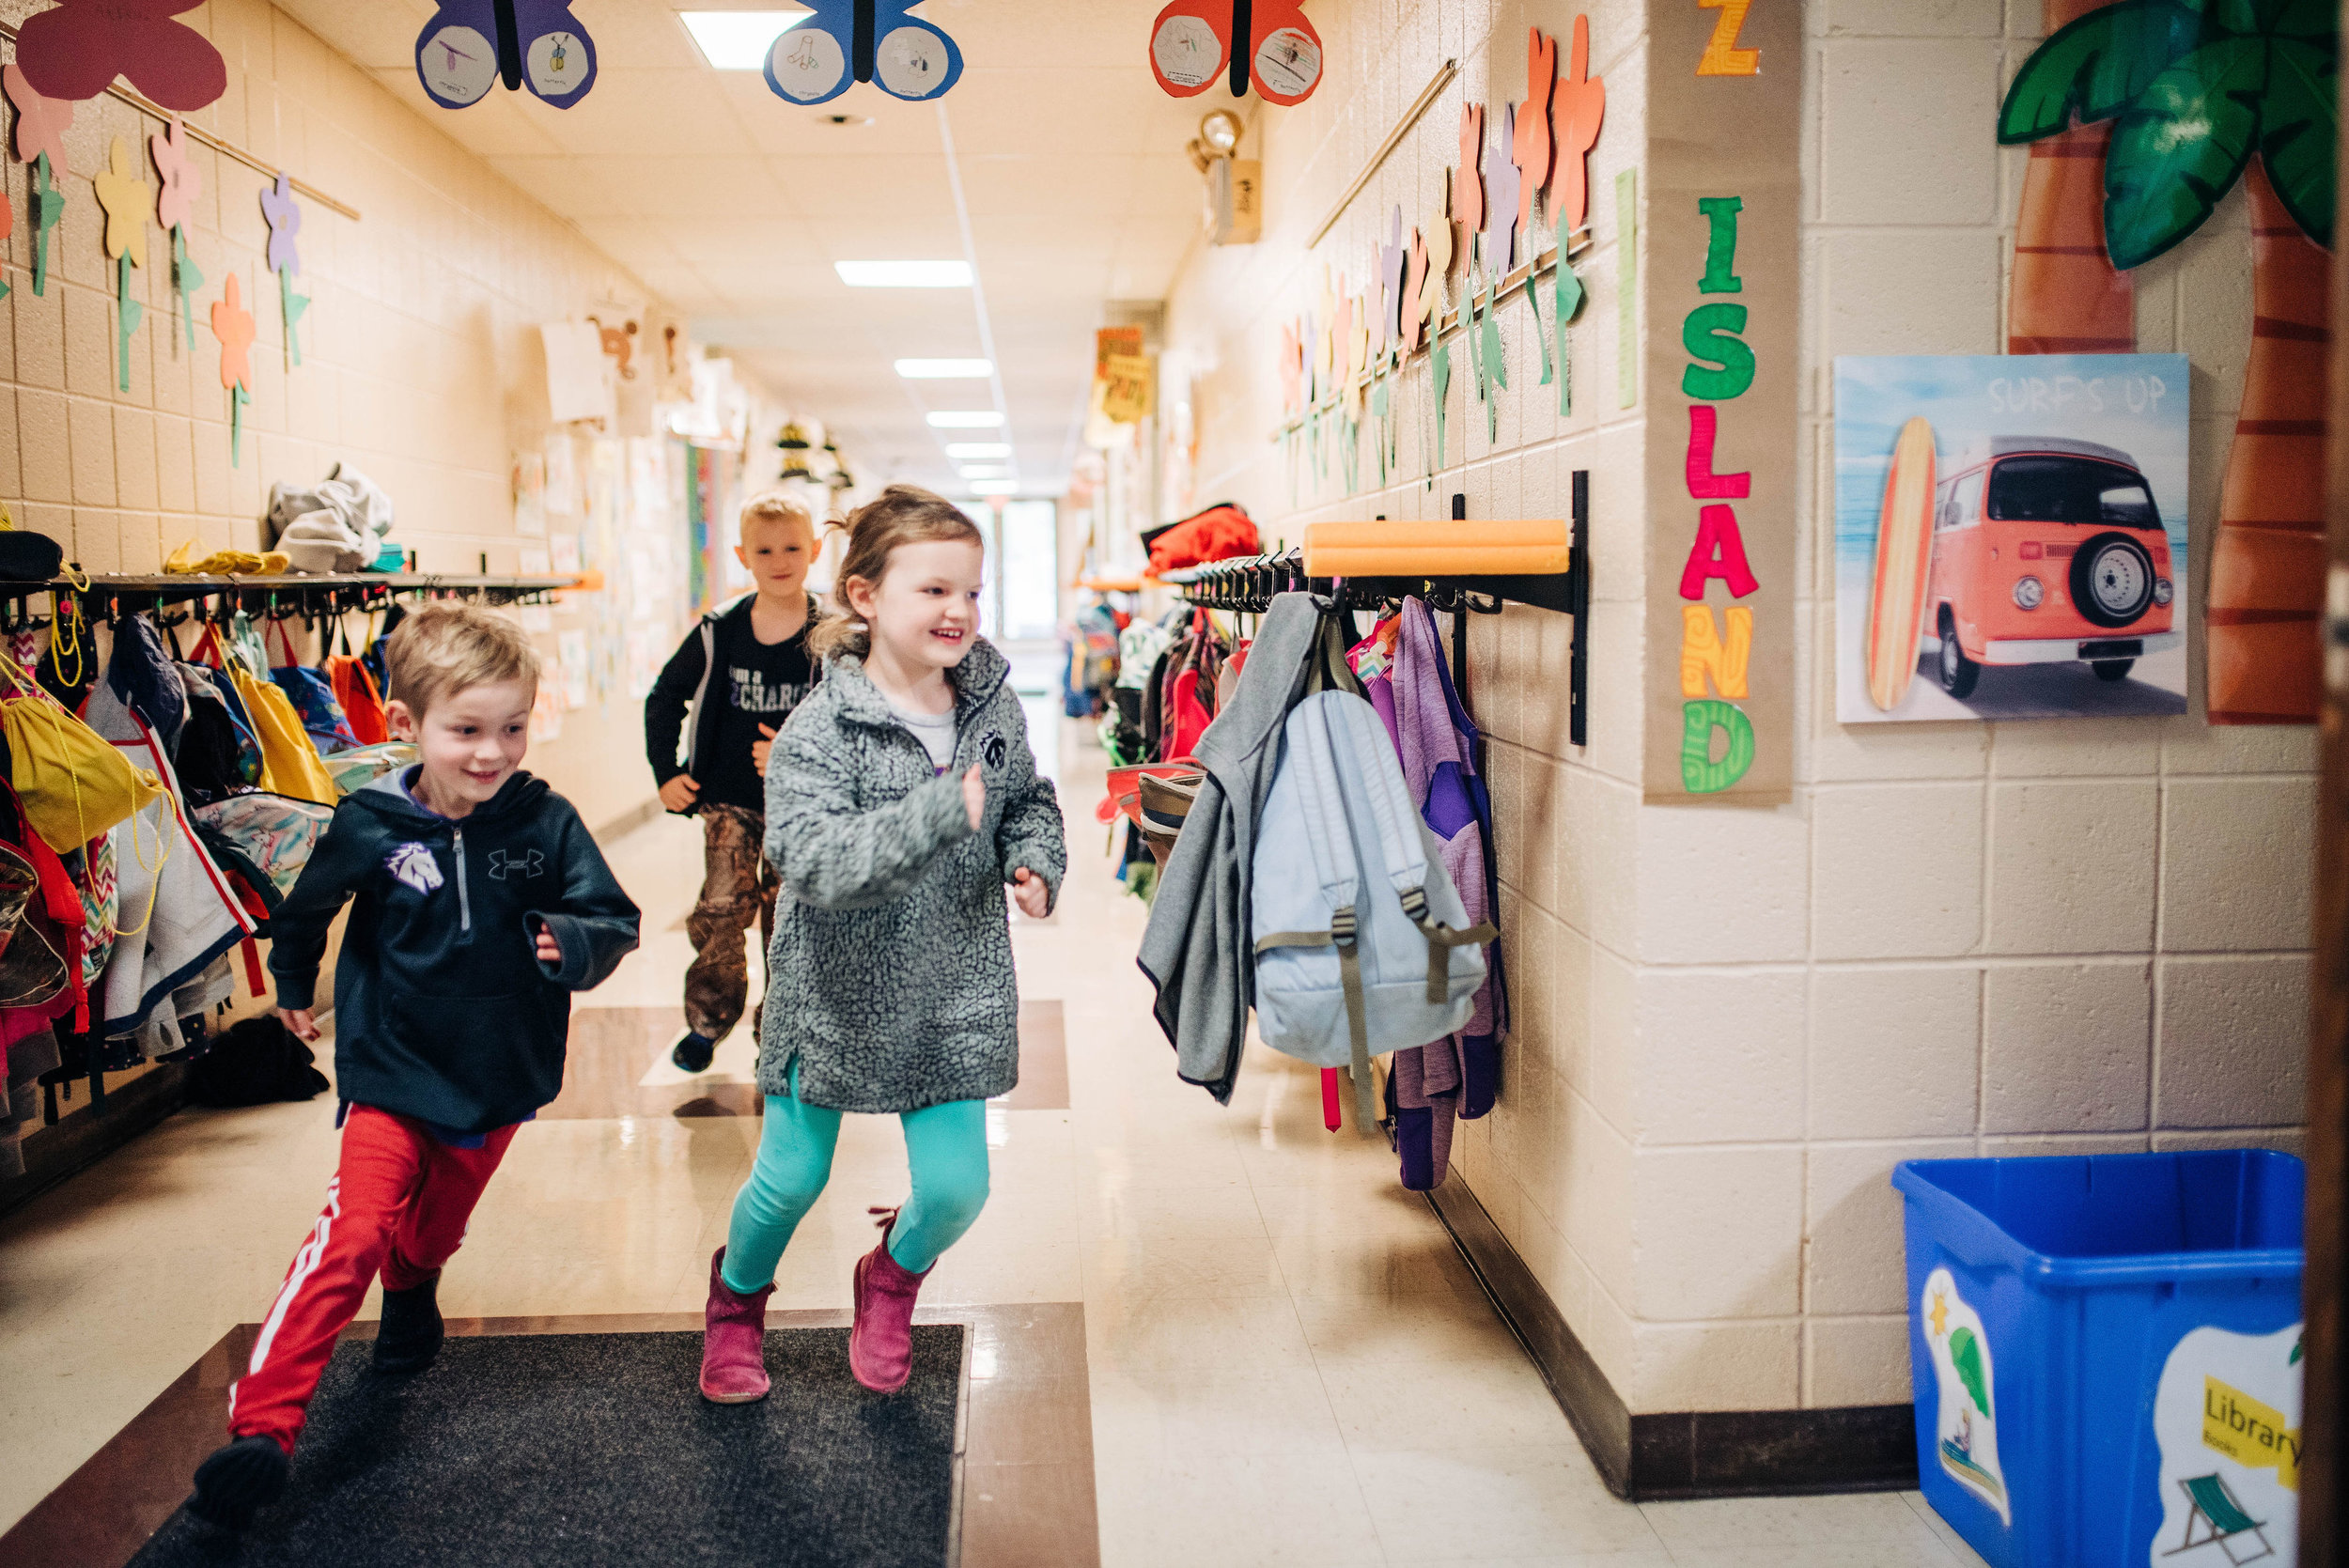 Our Vision - It is the vision of Peoria Christian School to produce academically skilled students who are equipped with a biblical worldview and who will impact the world for Christ.Learn More